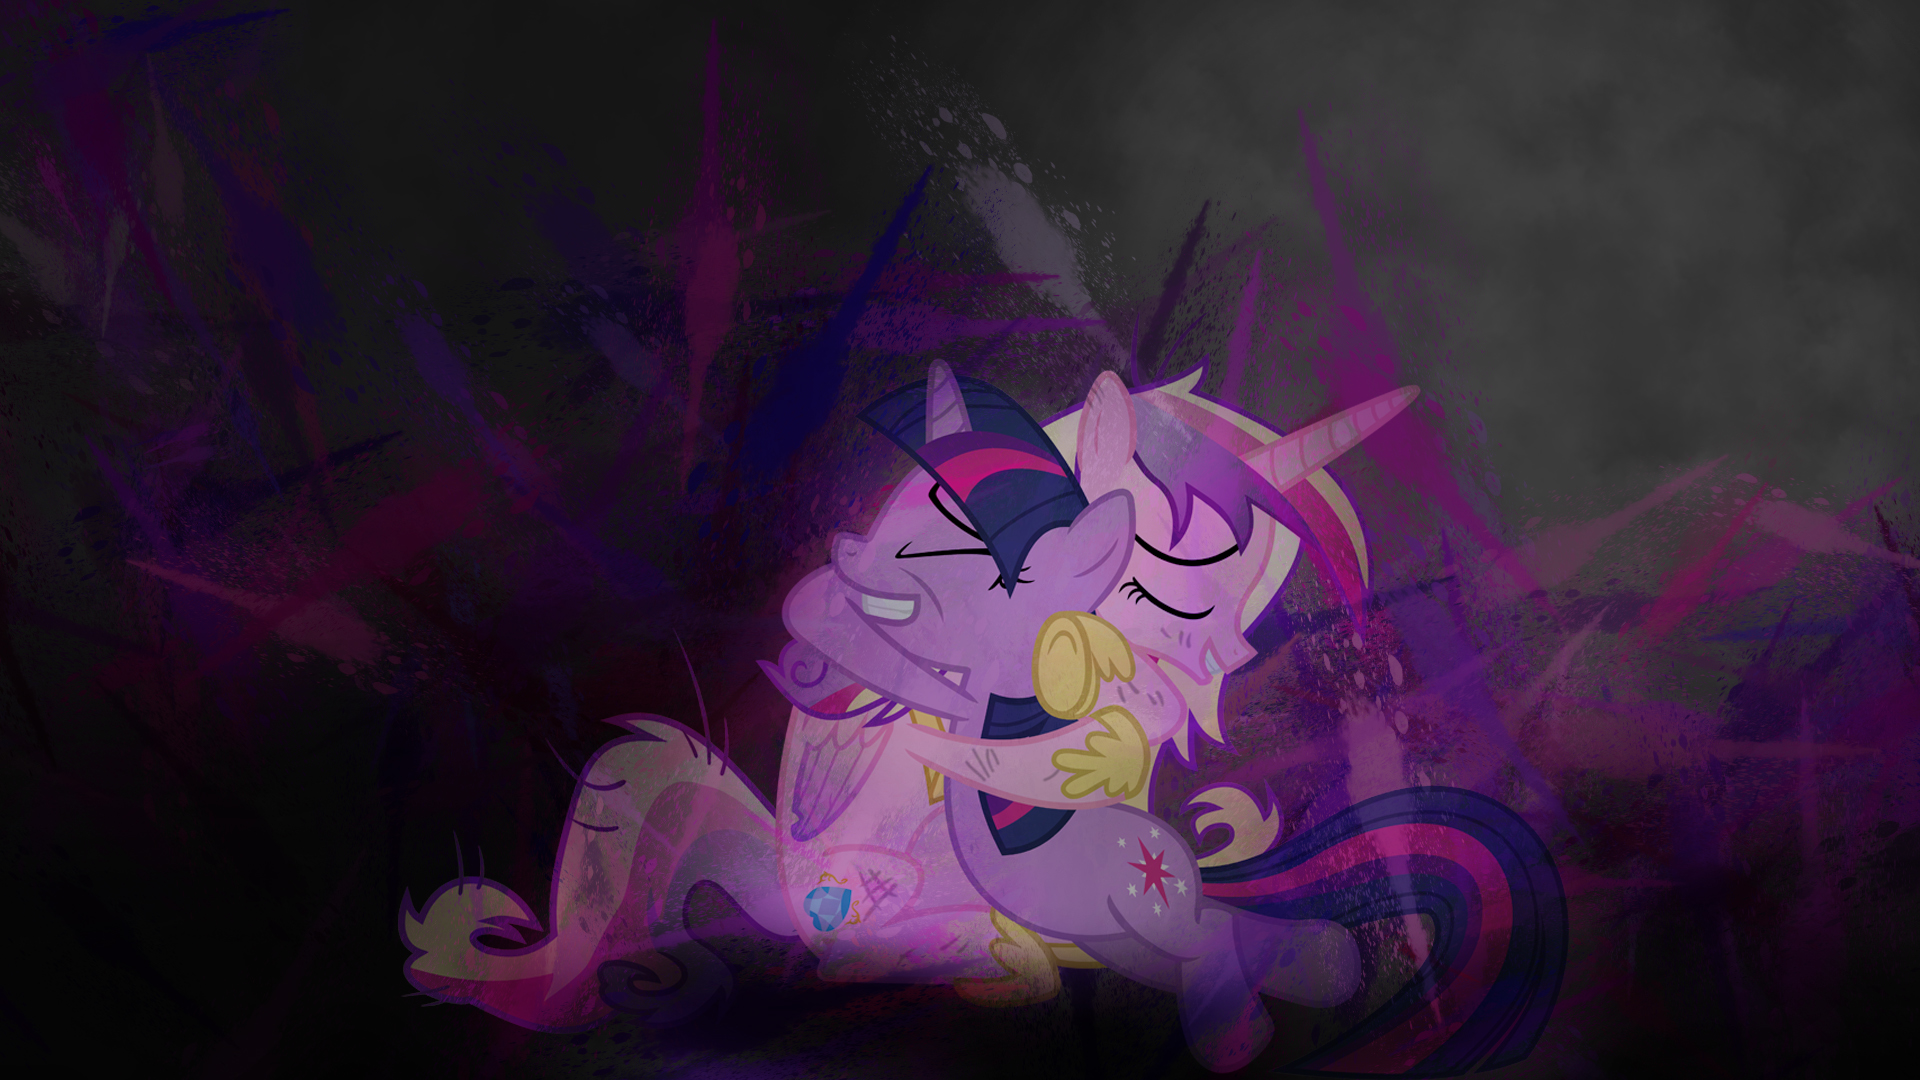 Some Cadence in your darkest moments by 90Sigma and bigmacintosh7